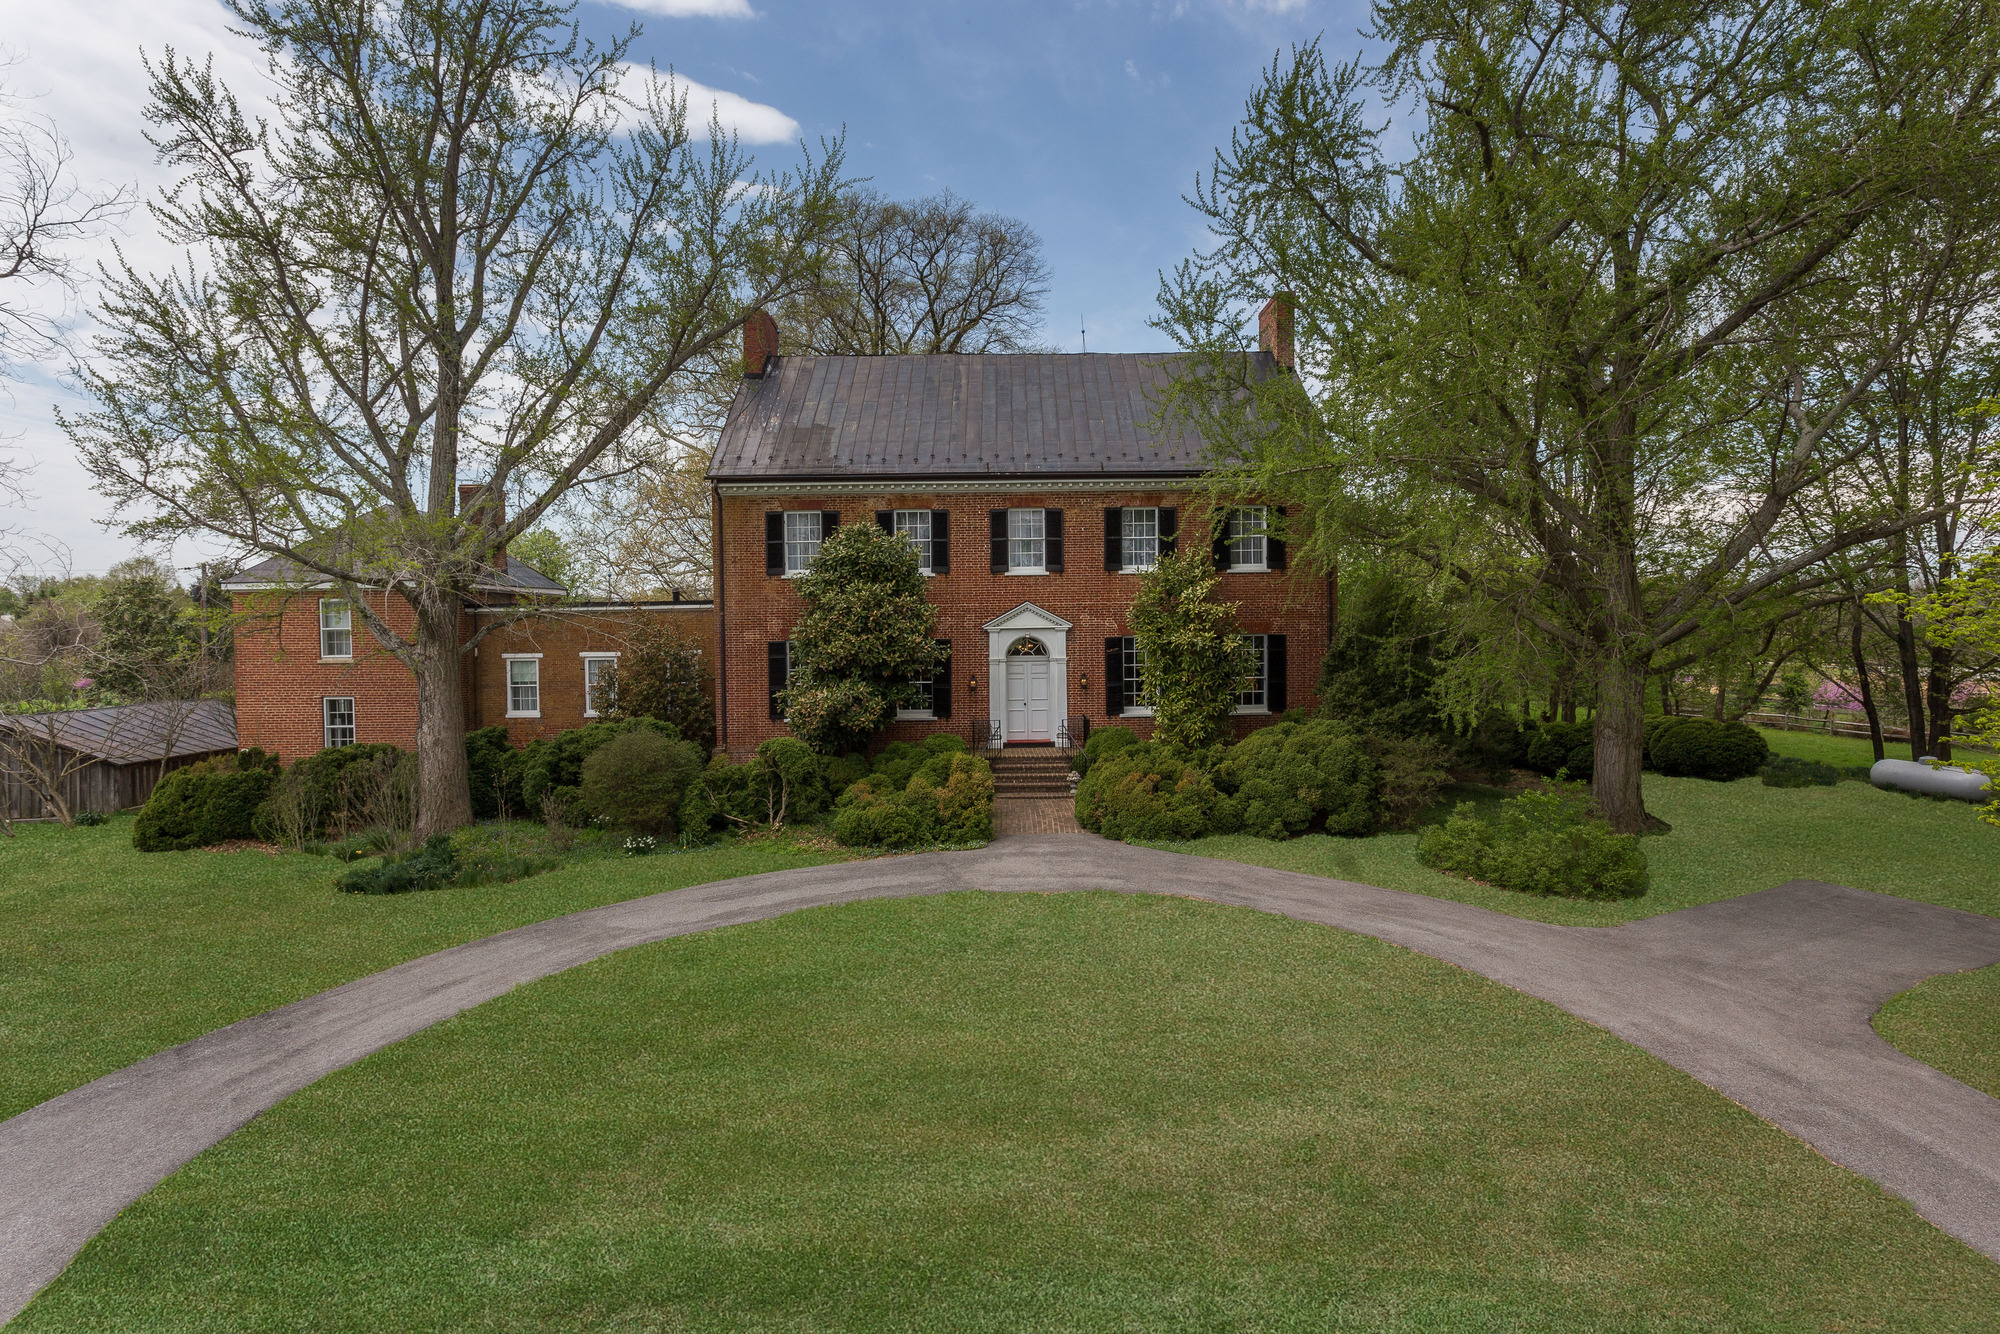 Jim Bell of Beasley Real Estate is proud to list historic Maryland estate